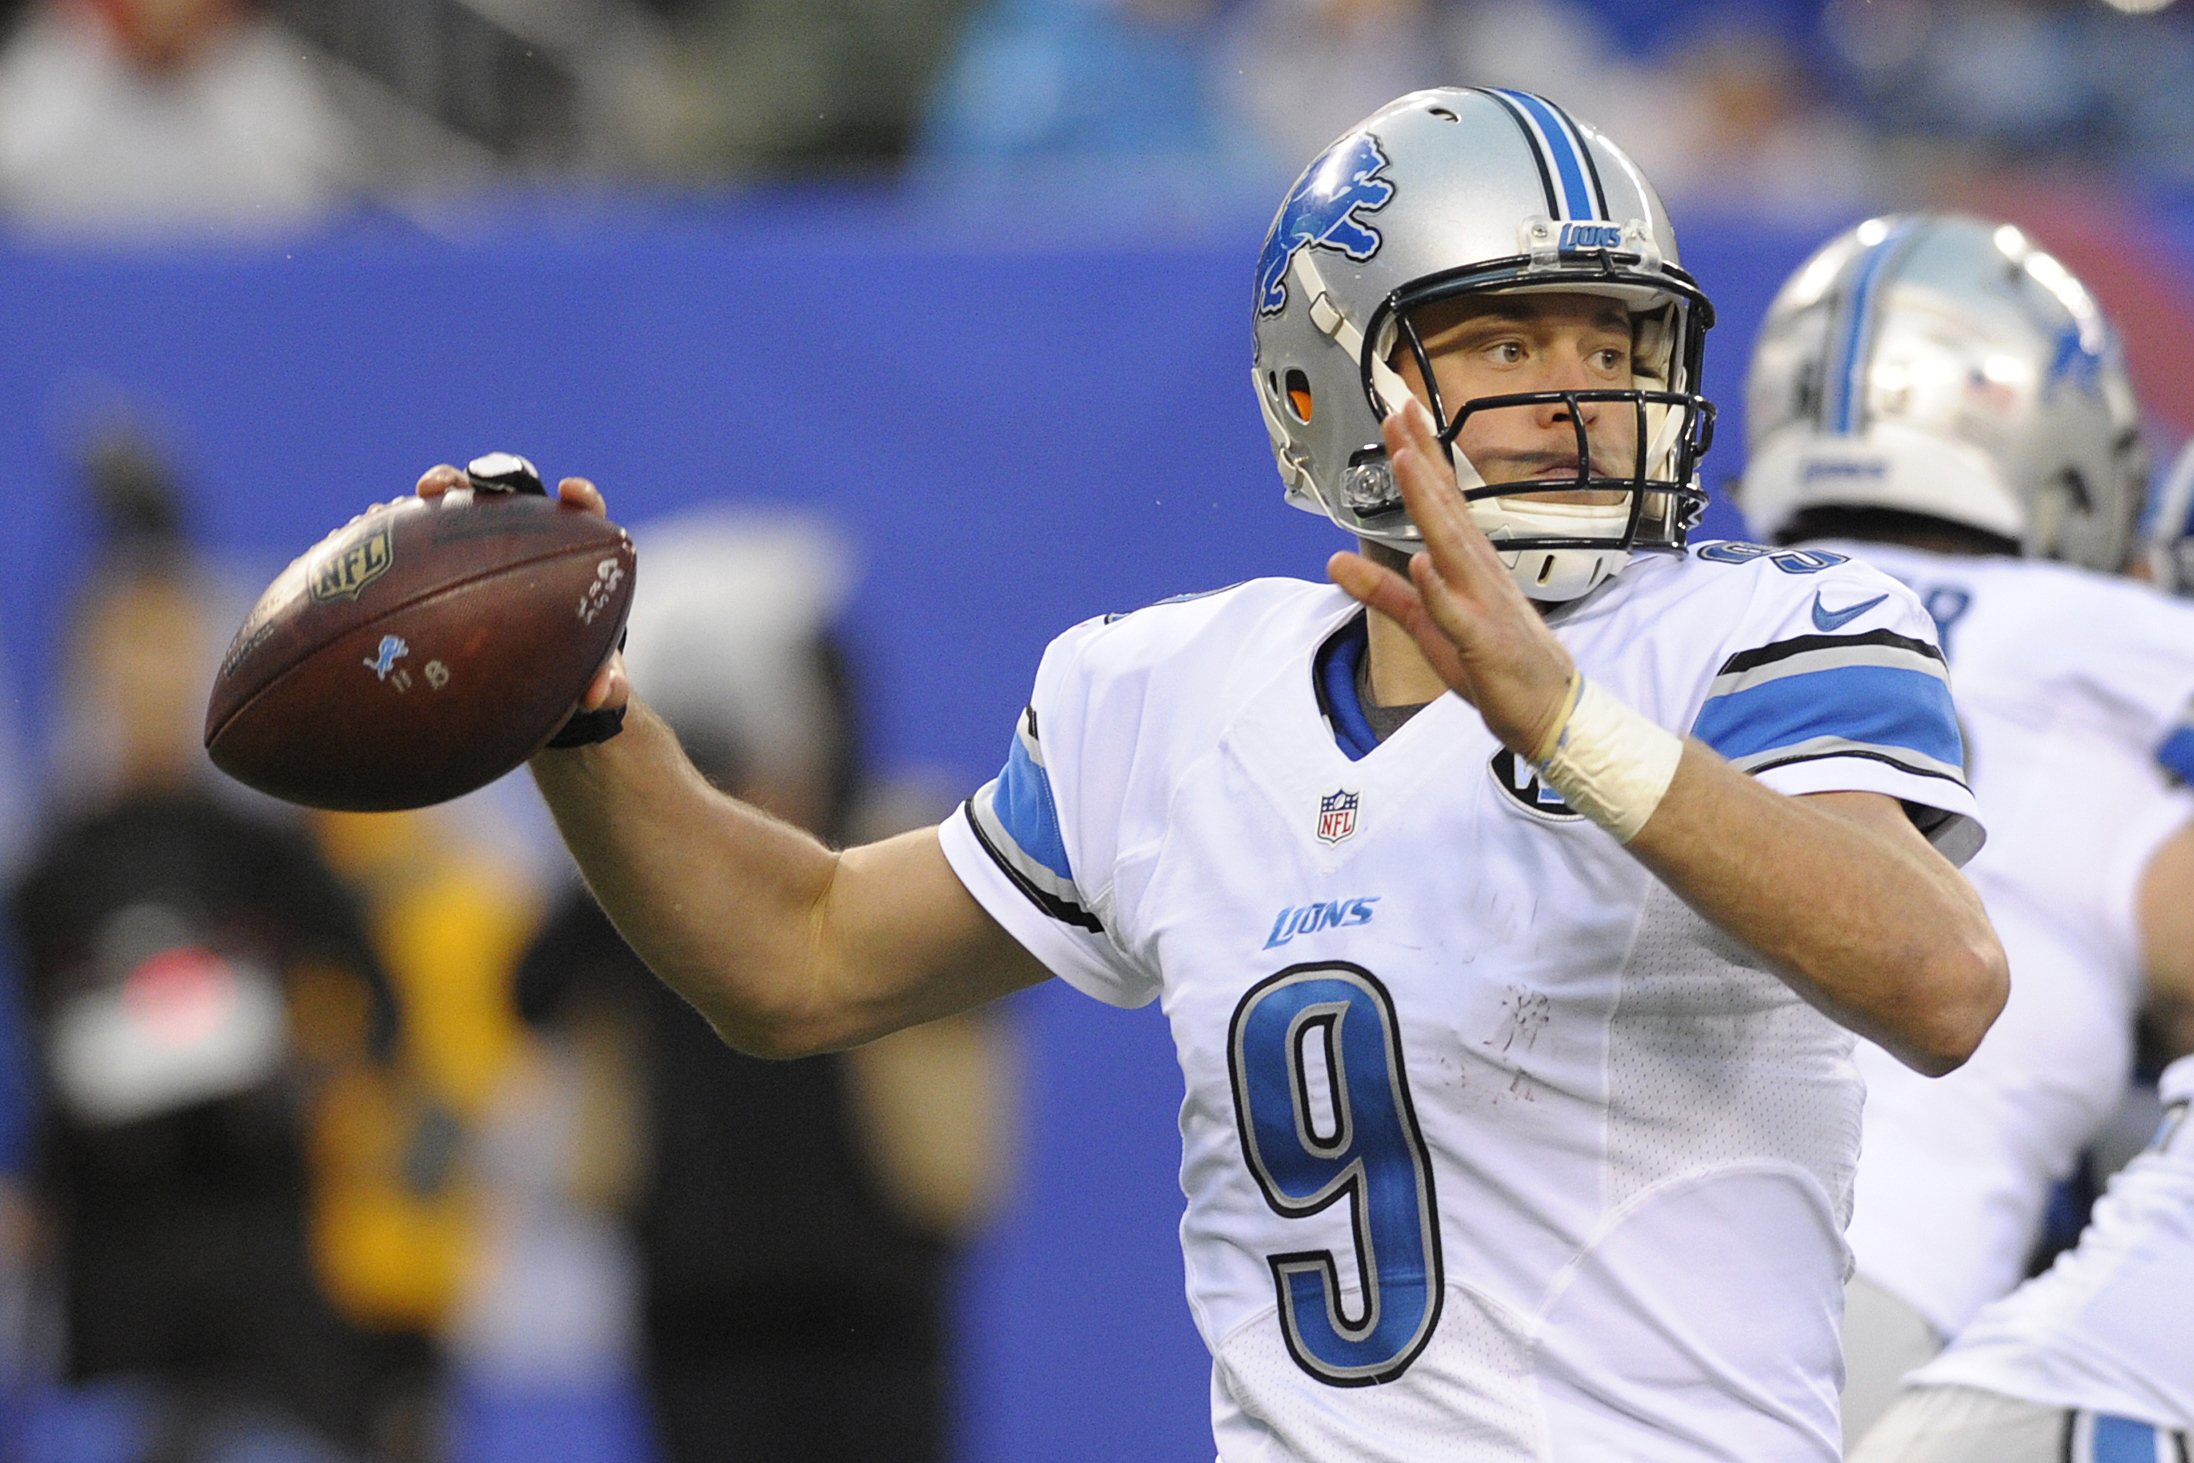 FILE - In this Sunday, Dec. 18, 2016 filephoto, Detroit Lions quarterback Matthew Stafford (9) throws a pass during the second half of an NFL football game against the New York Giants in East Rutherford, N.J. The Lions play the Dallas Cowboys on Monday, D